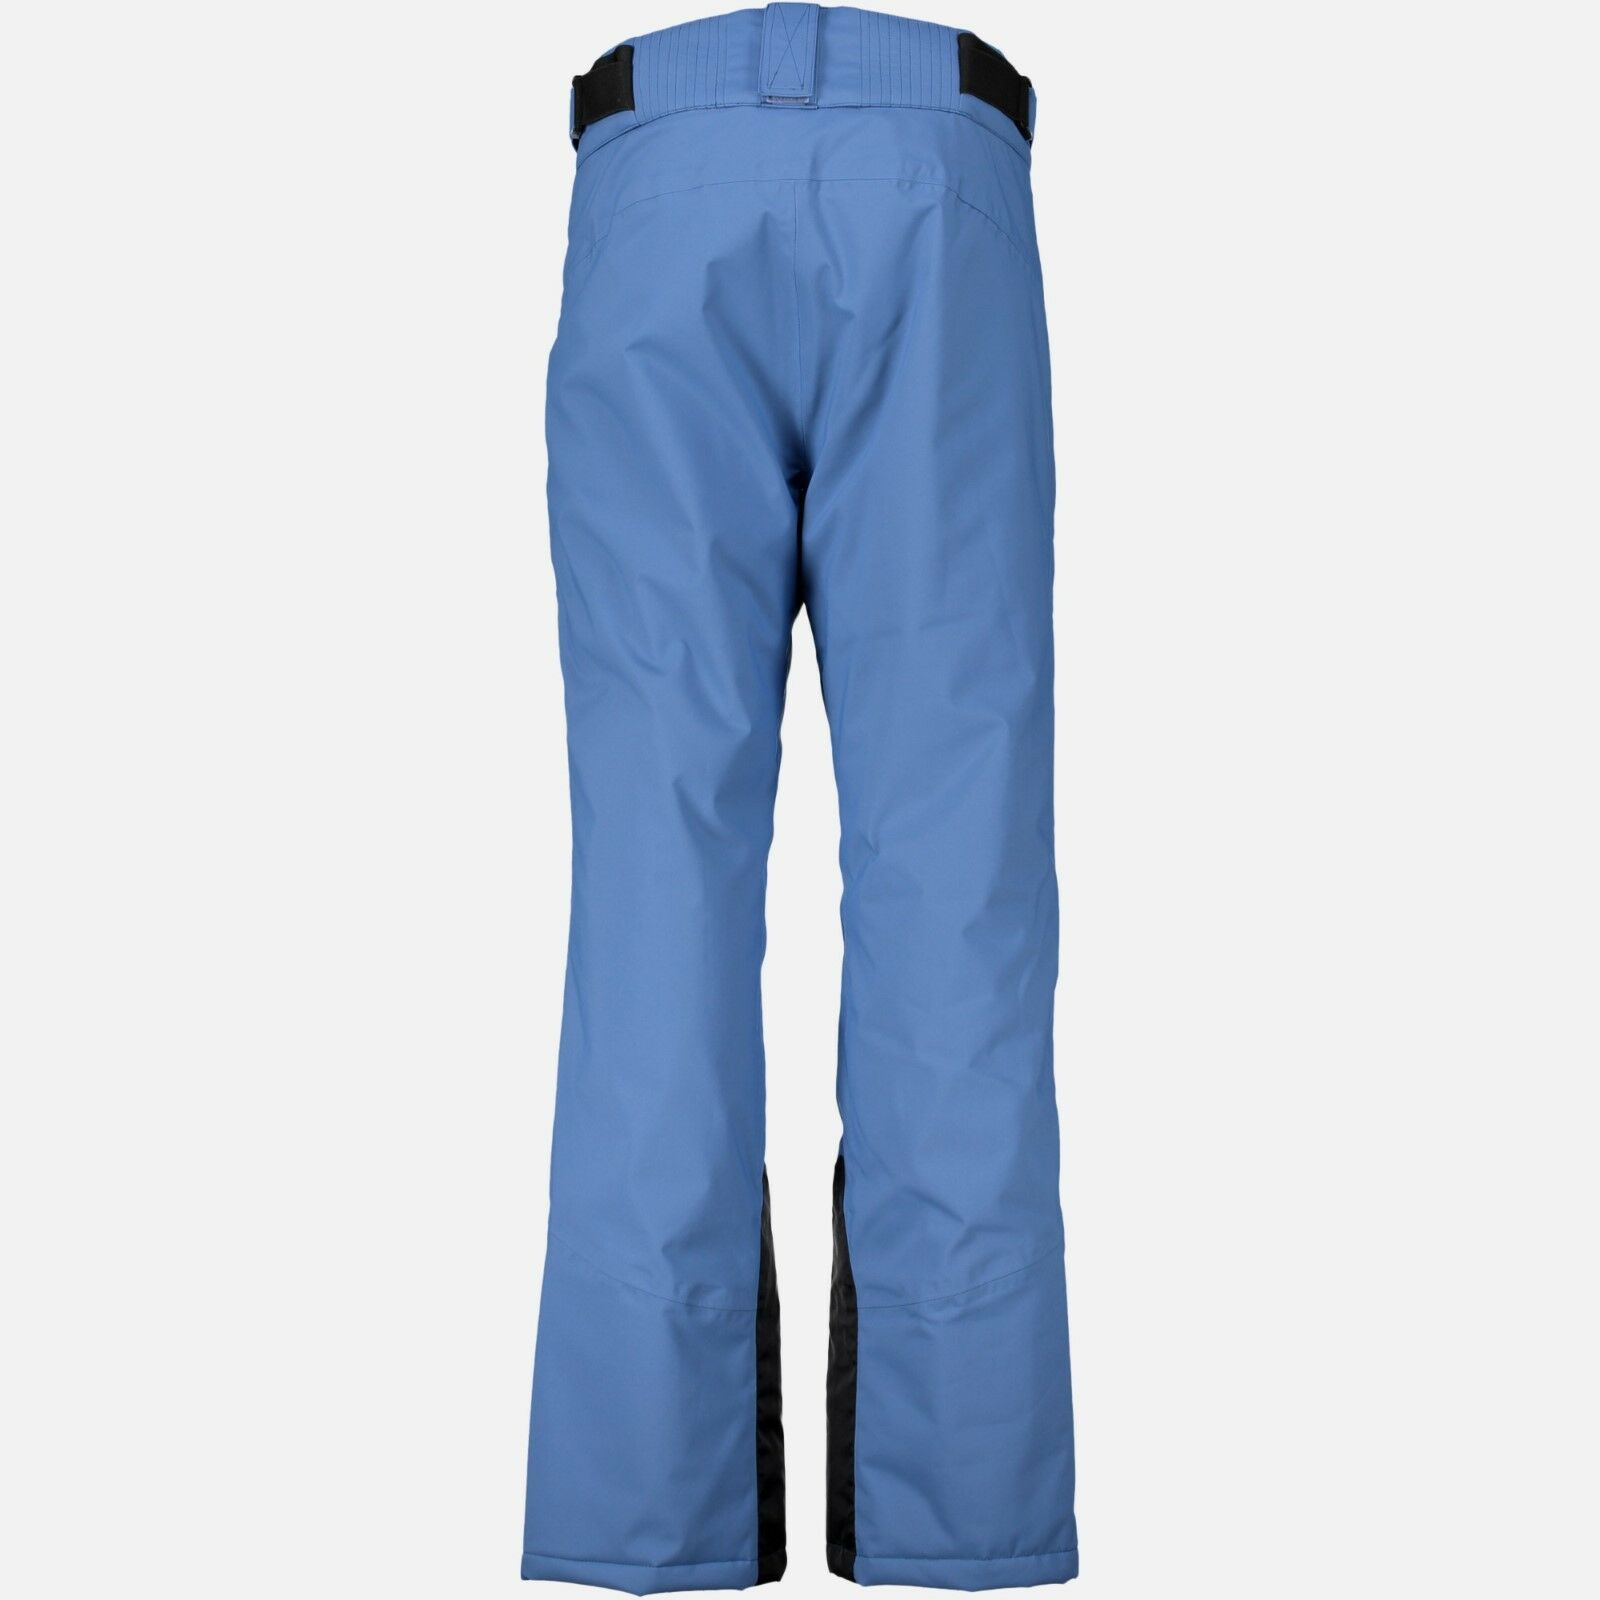 Five Seasons Paley Pant Men    Winterhose Skihose für Herren  gefüttert  blau  | Fuxin